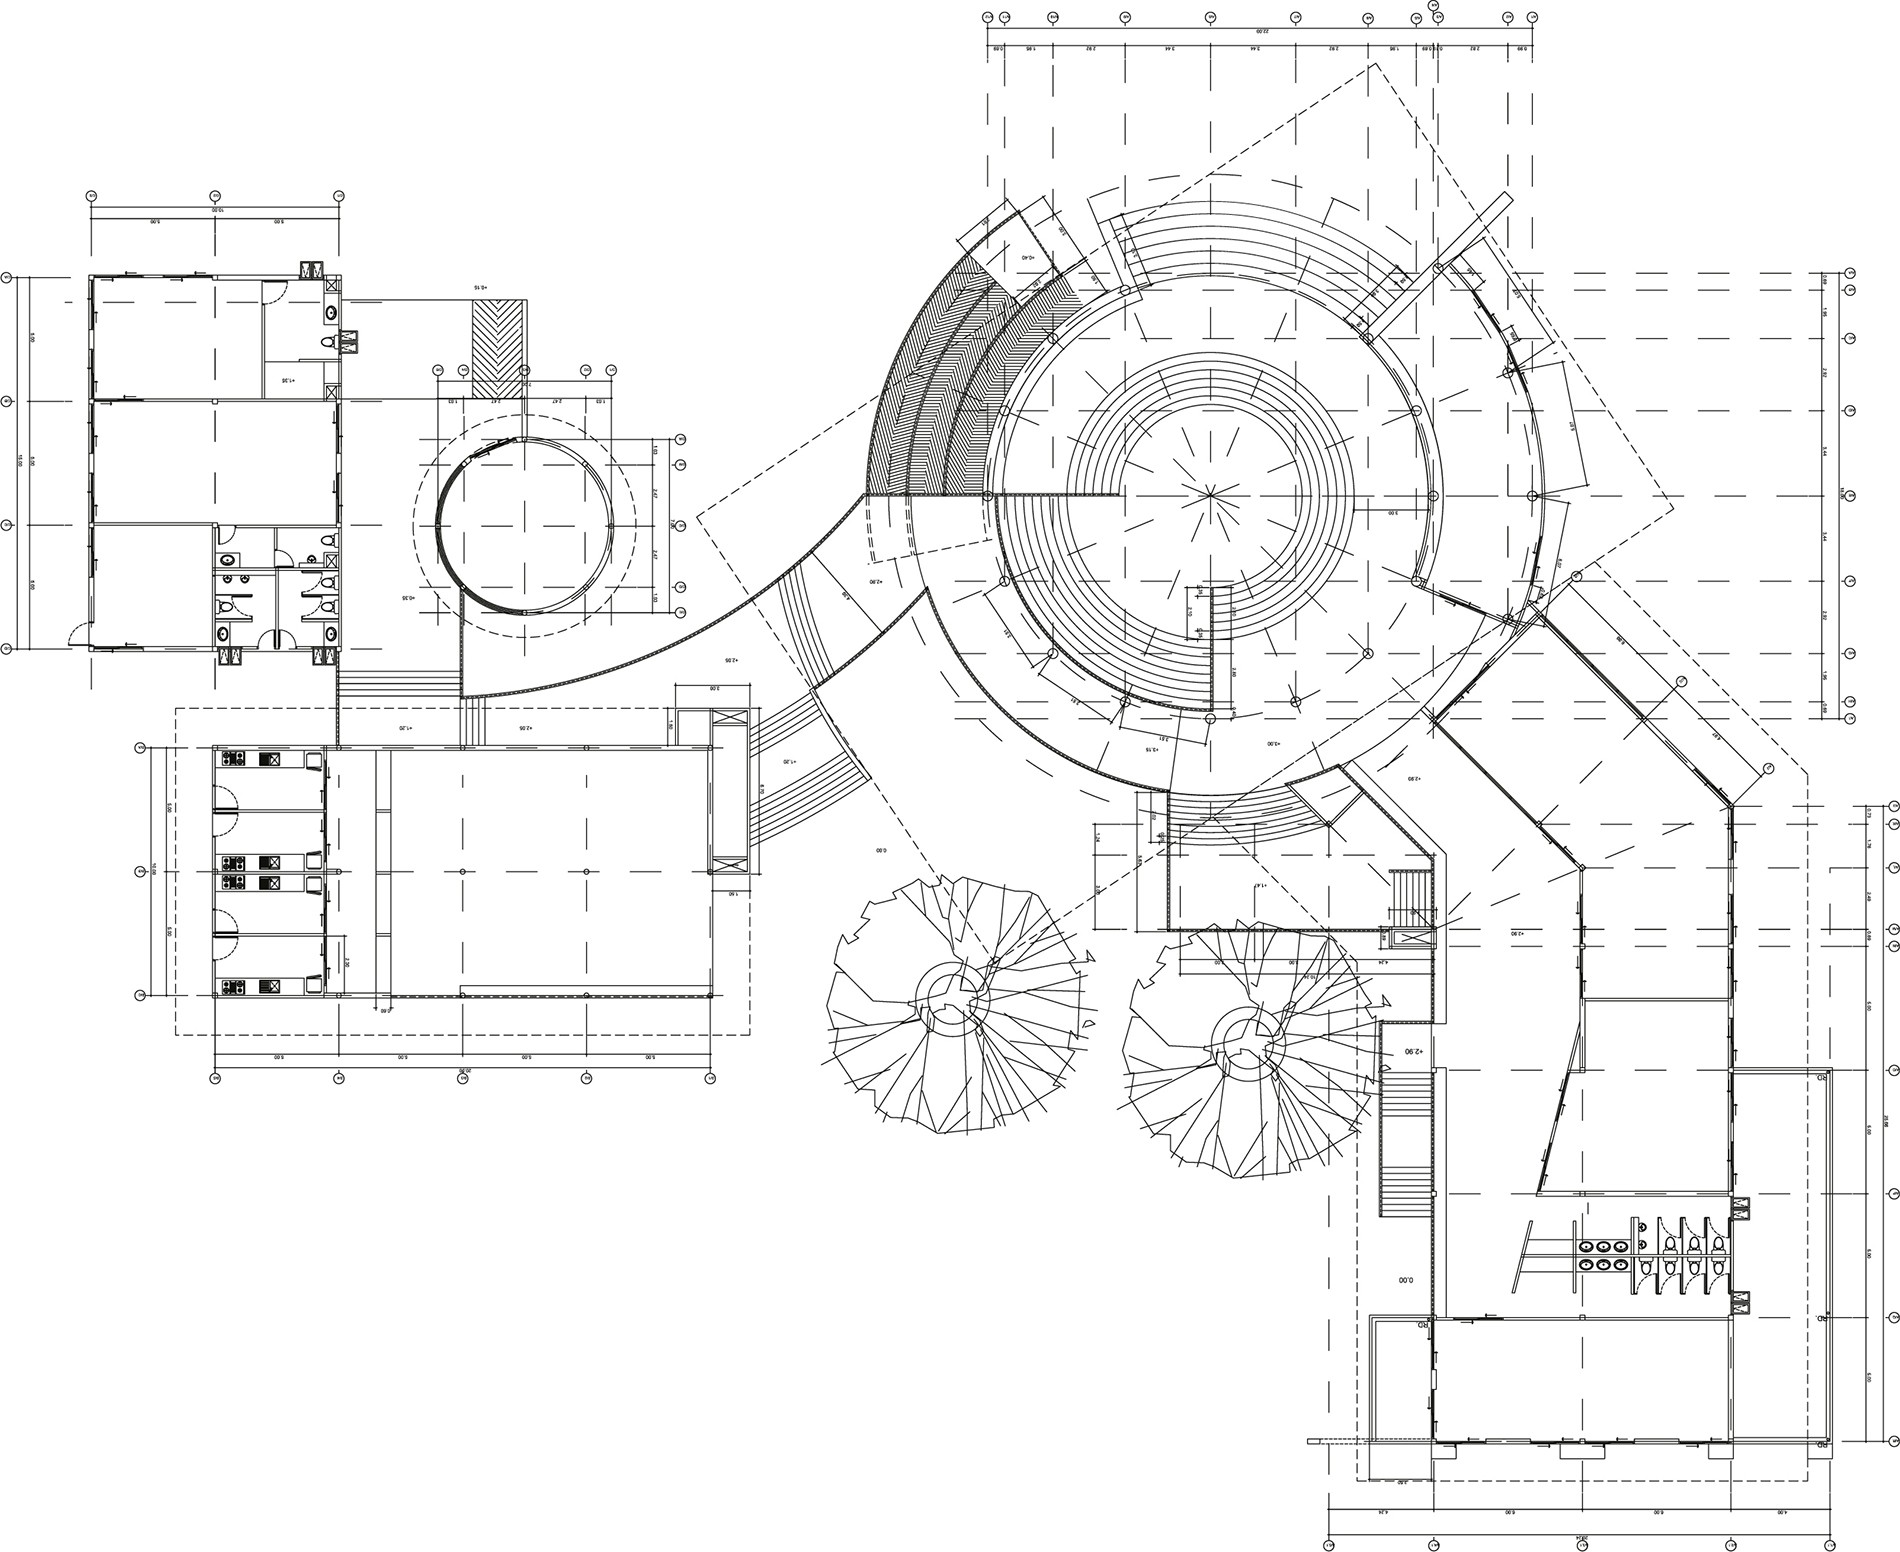 Mechanical design & assembly » CAD drawing 2 » PP Control & Automation